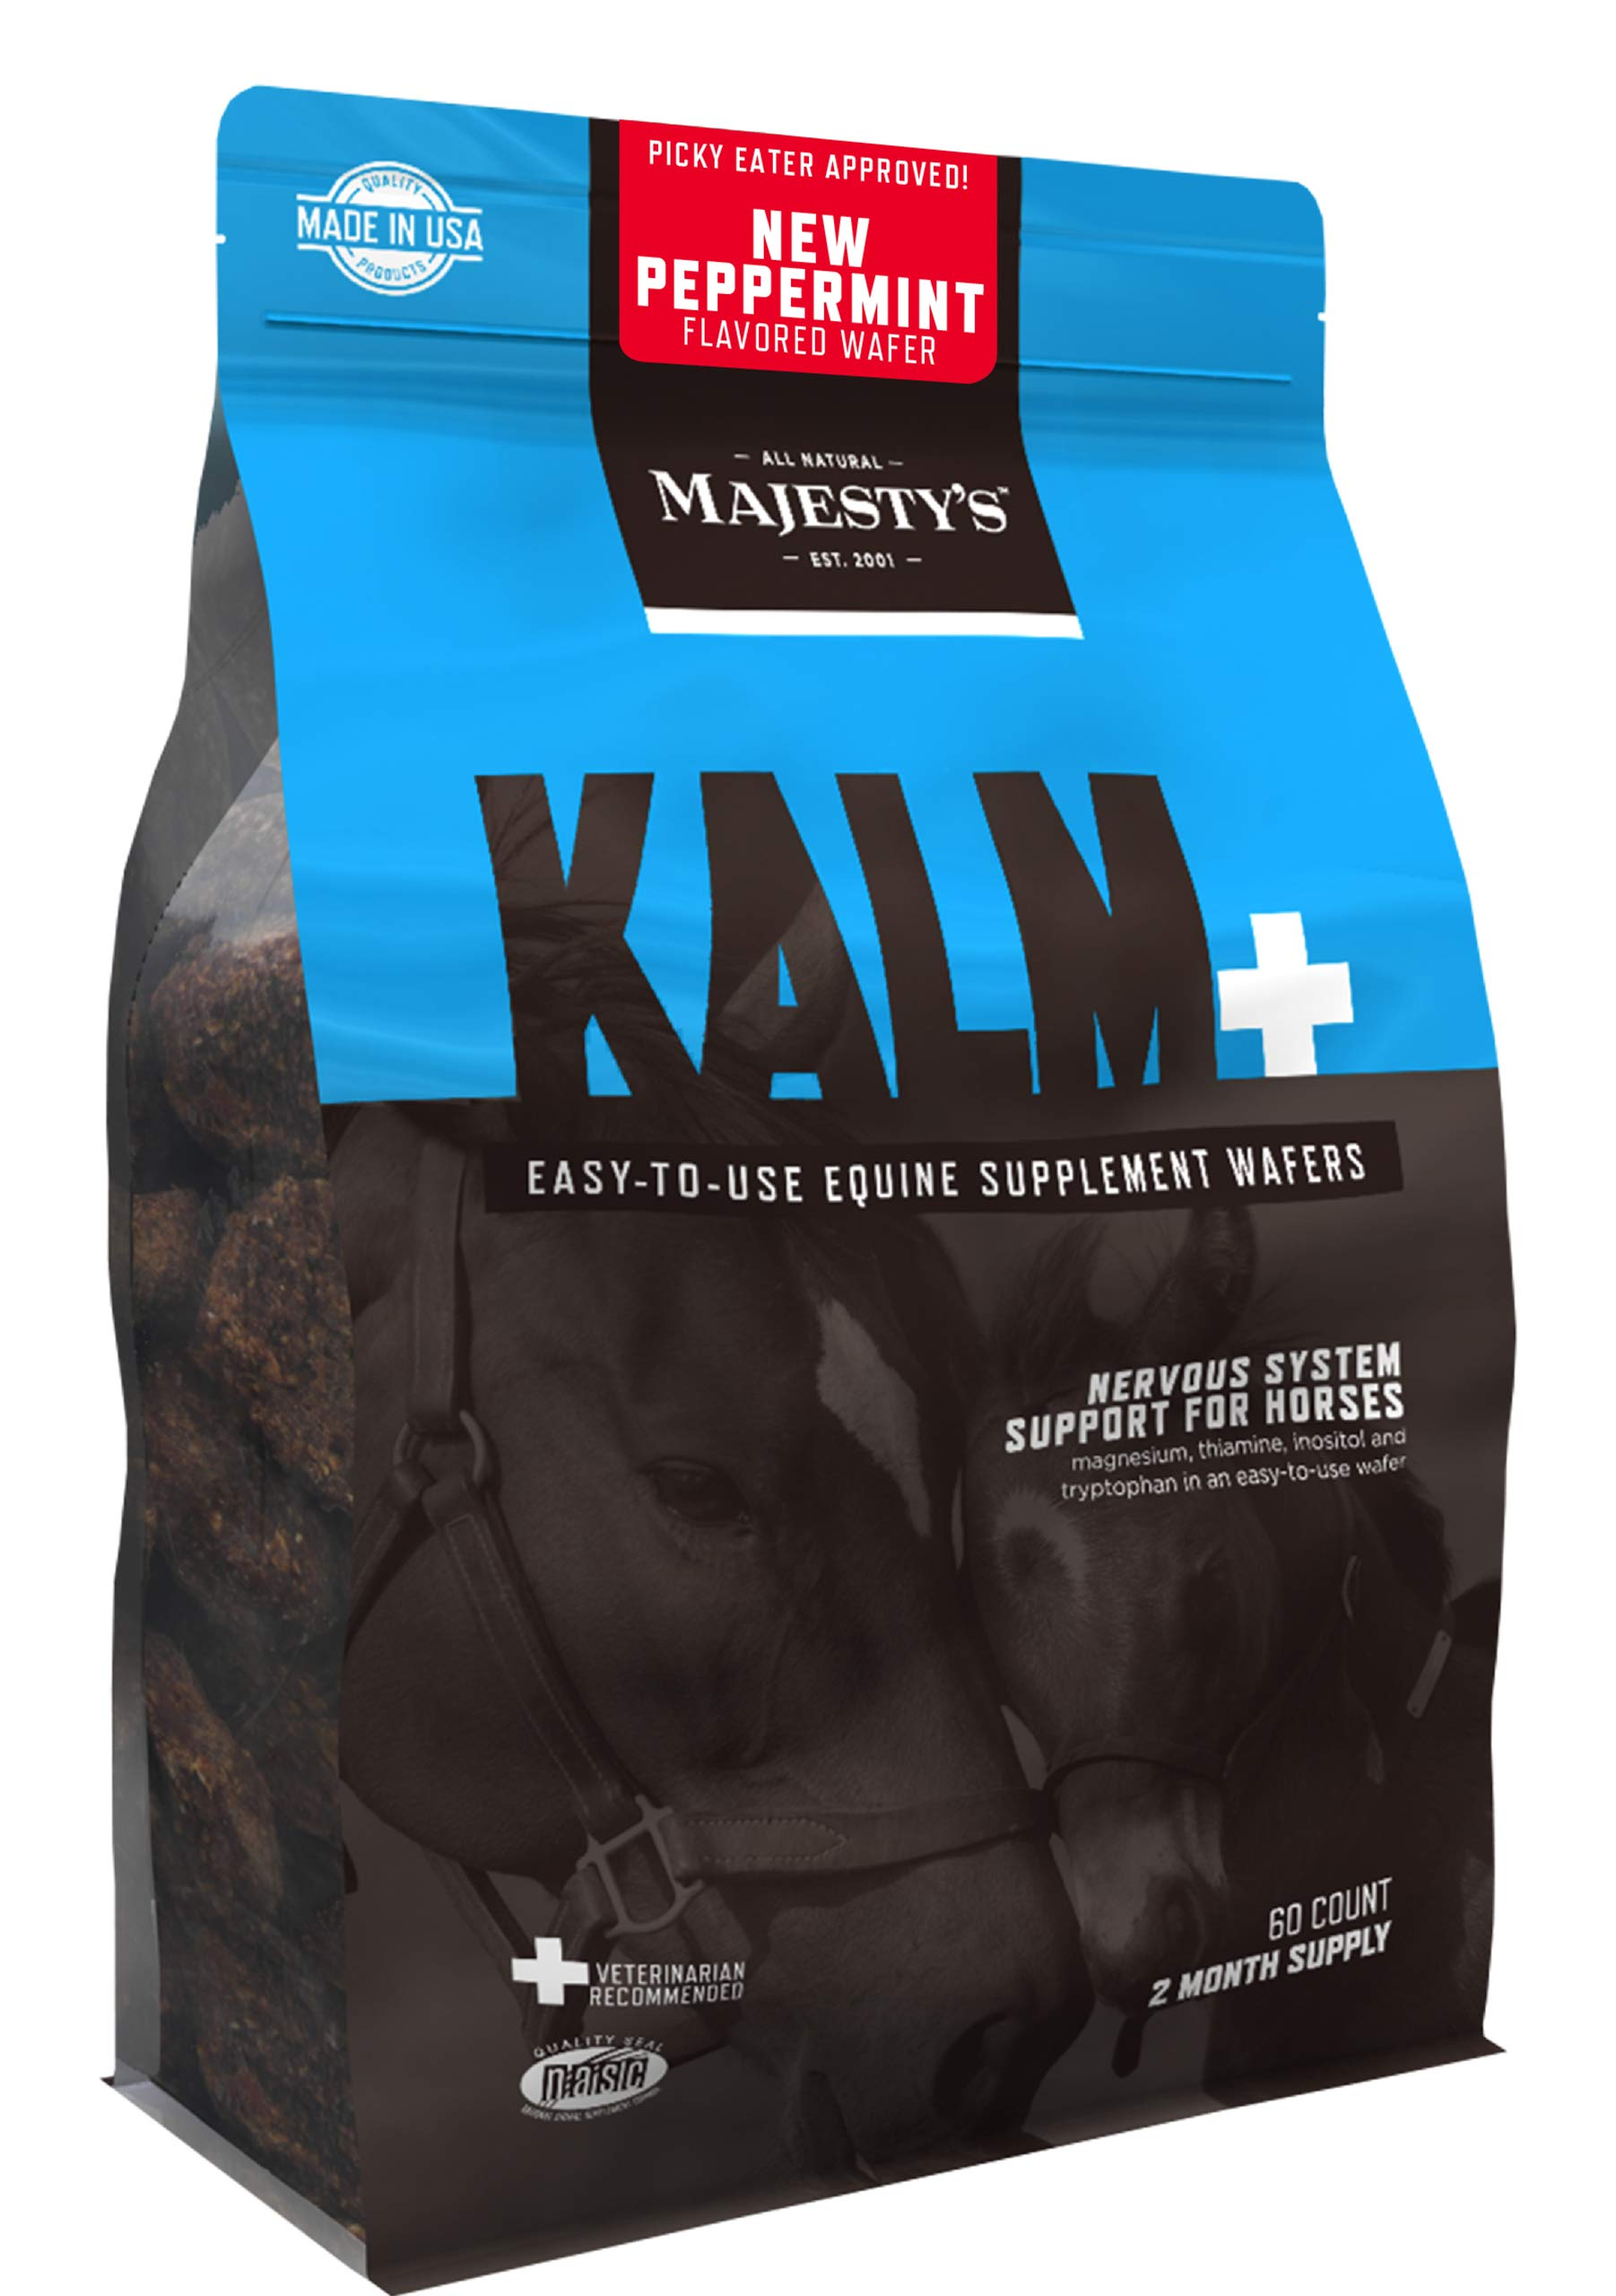 Majesty's Kalm+ Peppermint Wafers - Horse/Equine Balanced Behavior & Nervous System Function Supplement - Tryptophan, Vitamin B1 - Calming, Eases Anxiety/Fear/Anger - 2 Month Supply (1 Bag/60 Count) by Majesty's